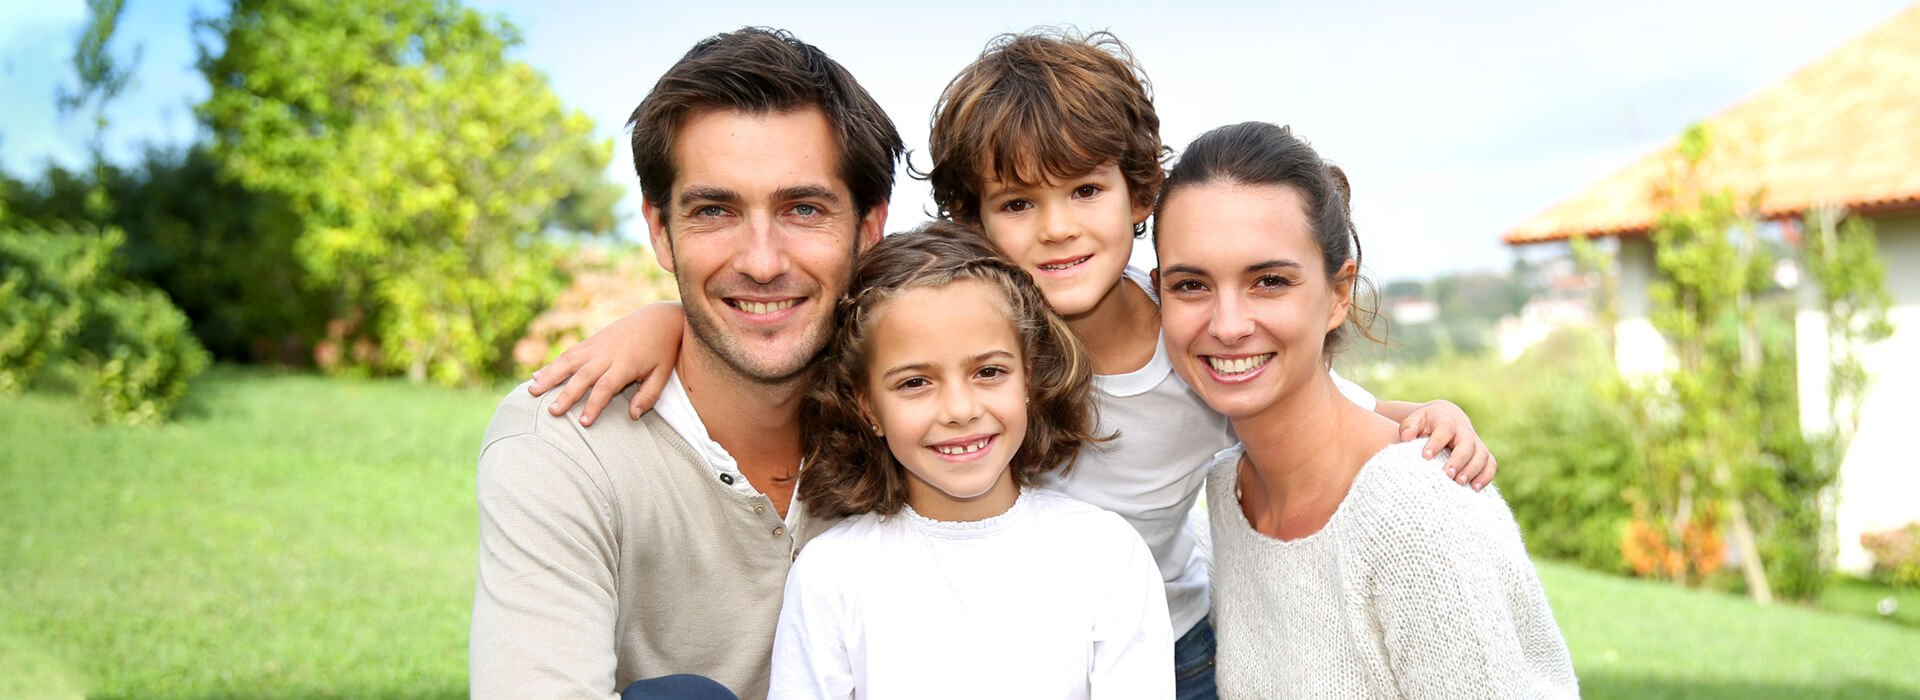 Upper Cervical Chiropractic Care for Families